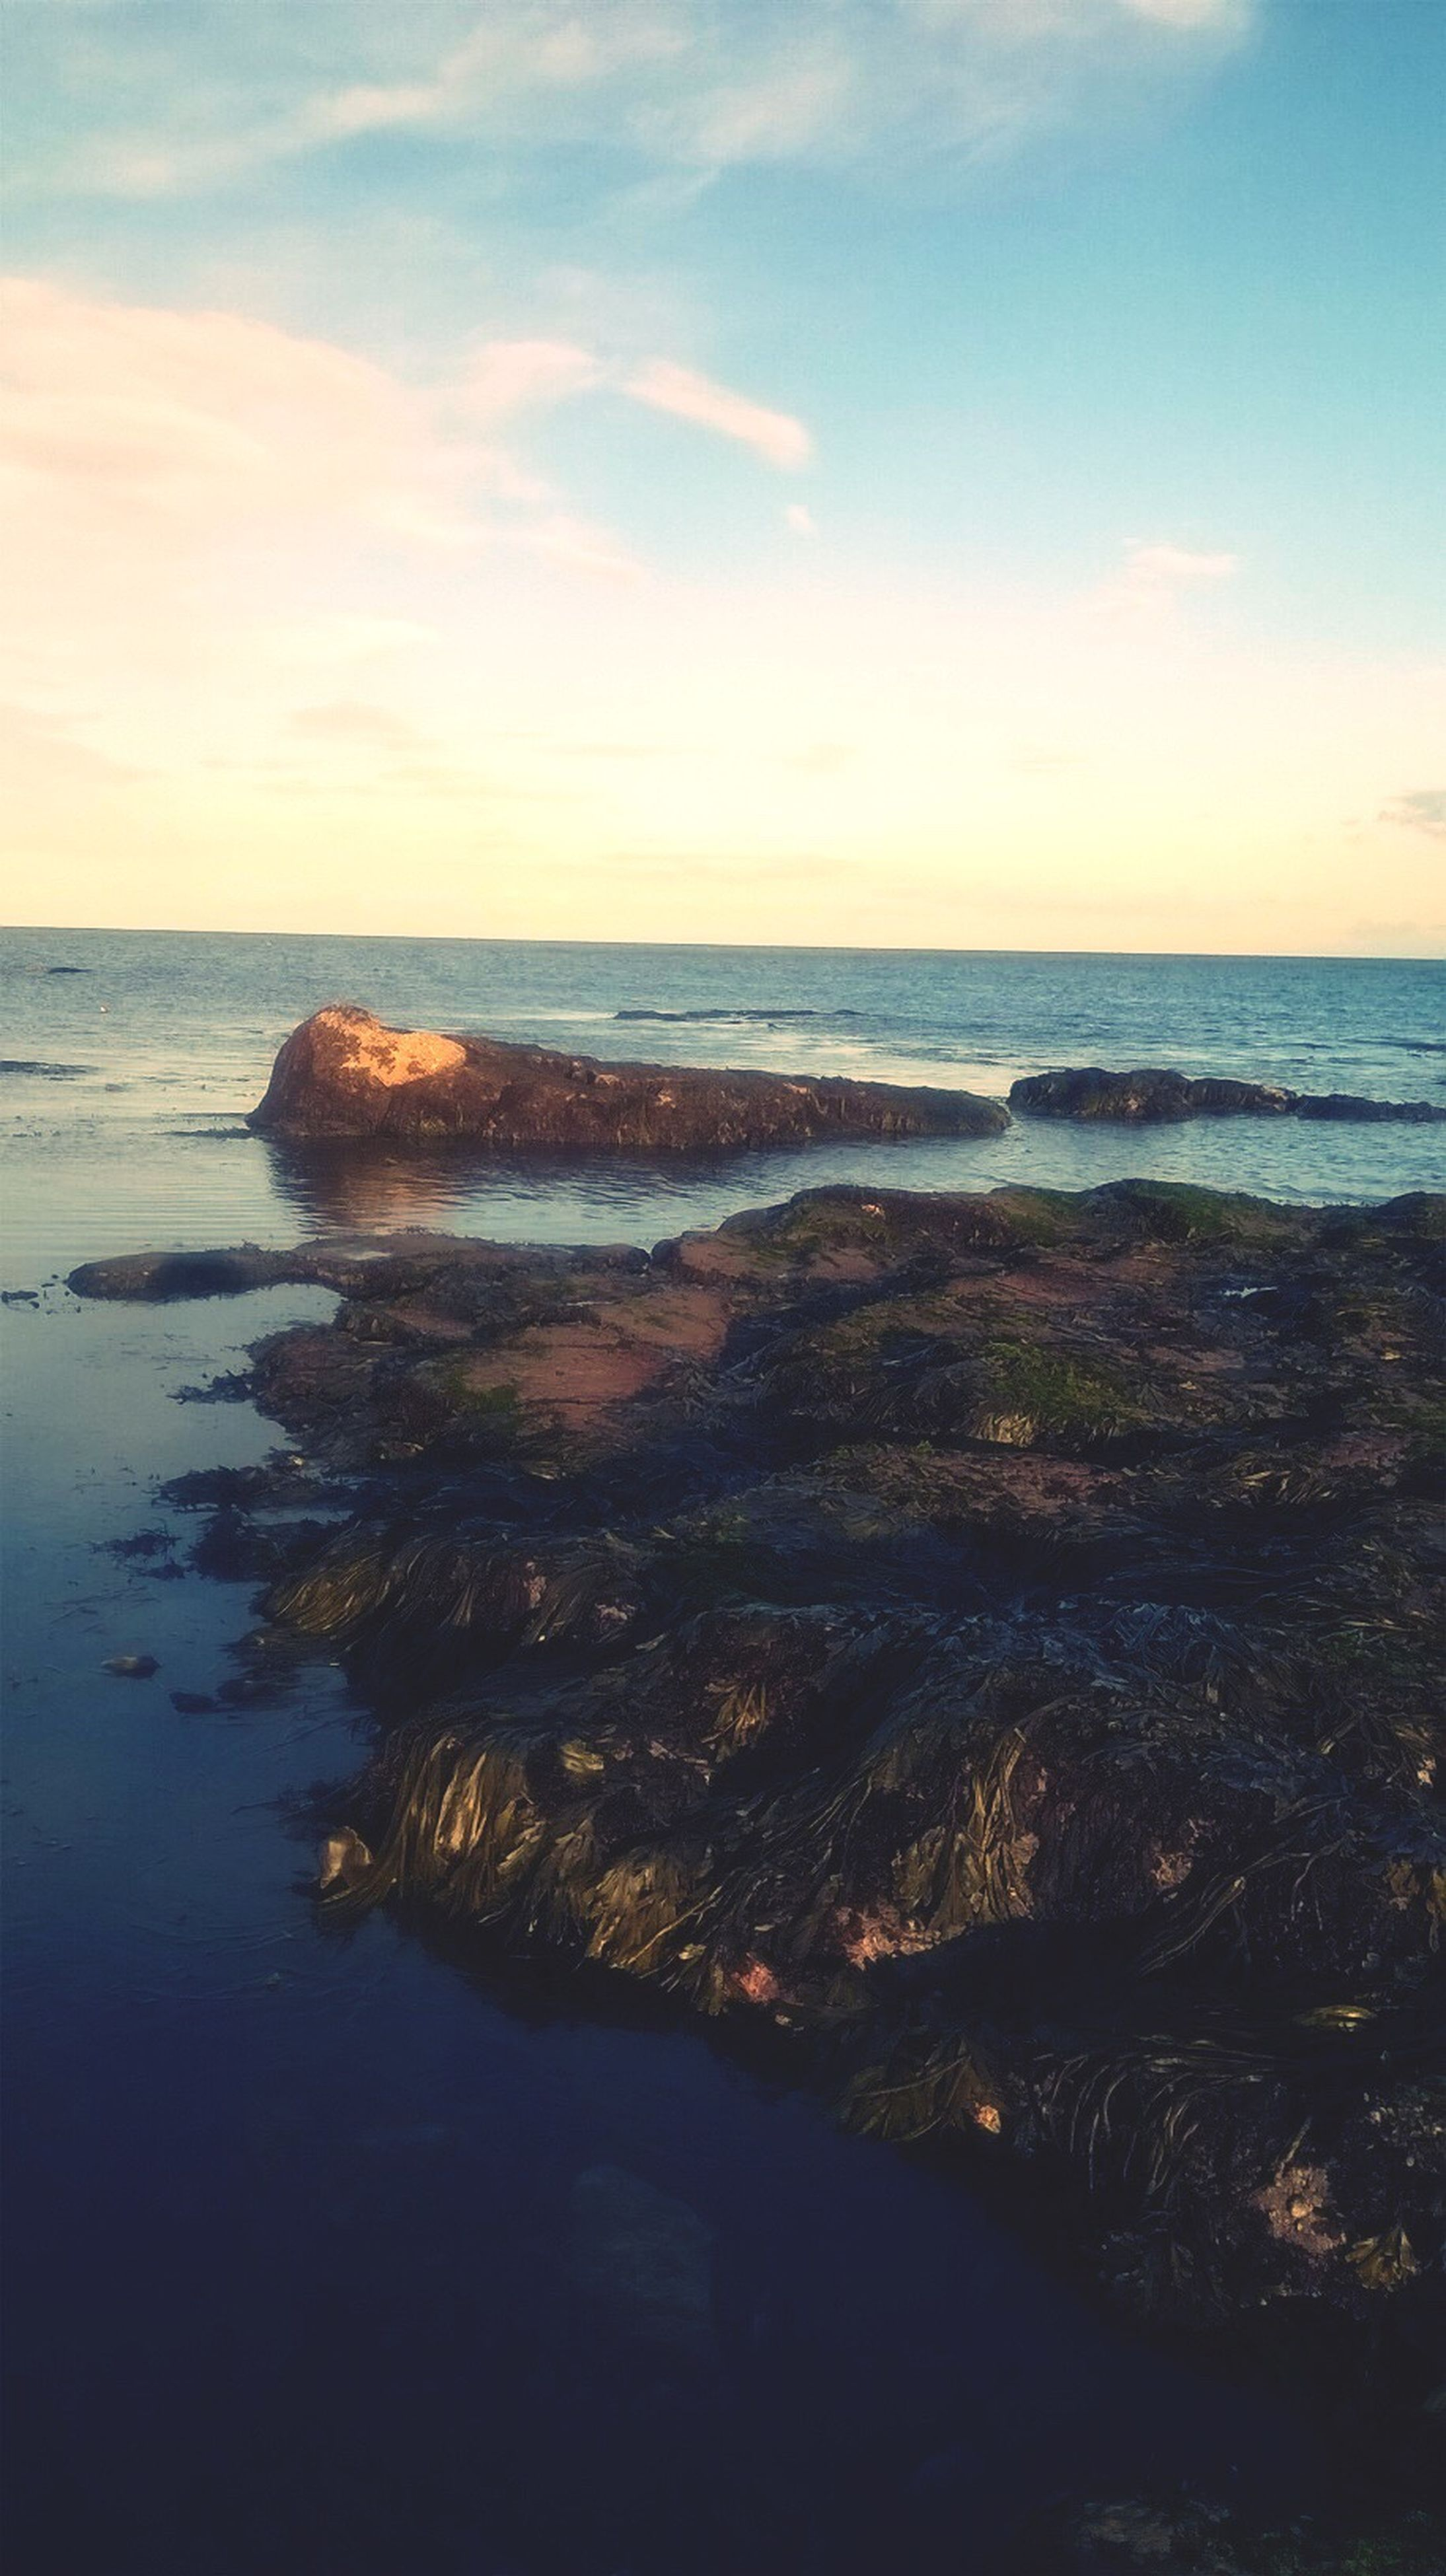 sea, horizon over water, sky, nature, beauty in nature, scenics, water, no people, sunset, beach, outdoors, cloud - sky, tree, day